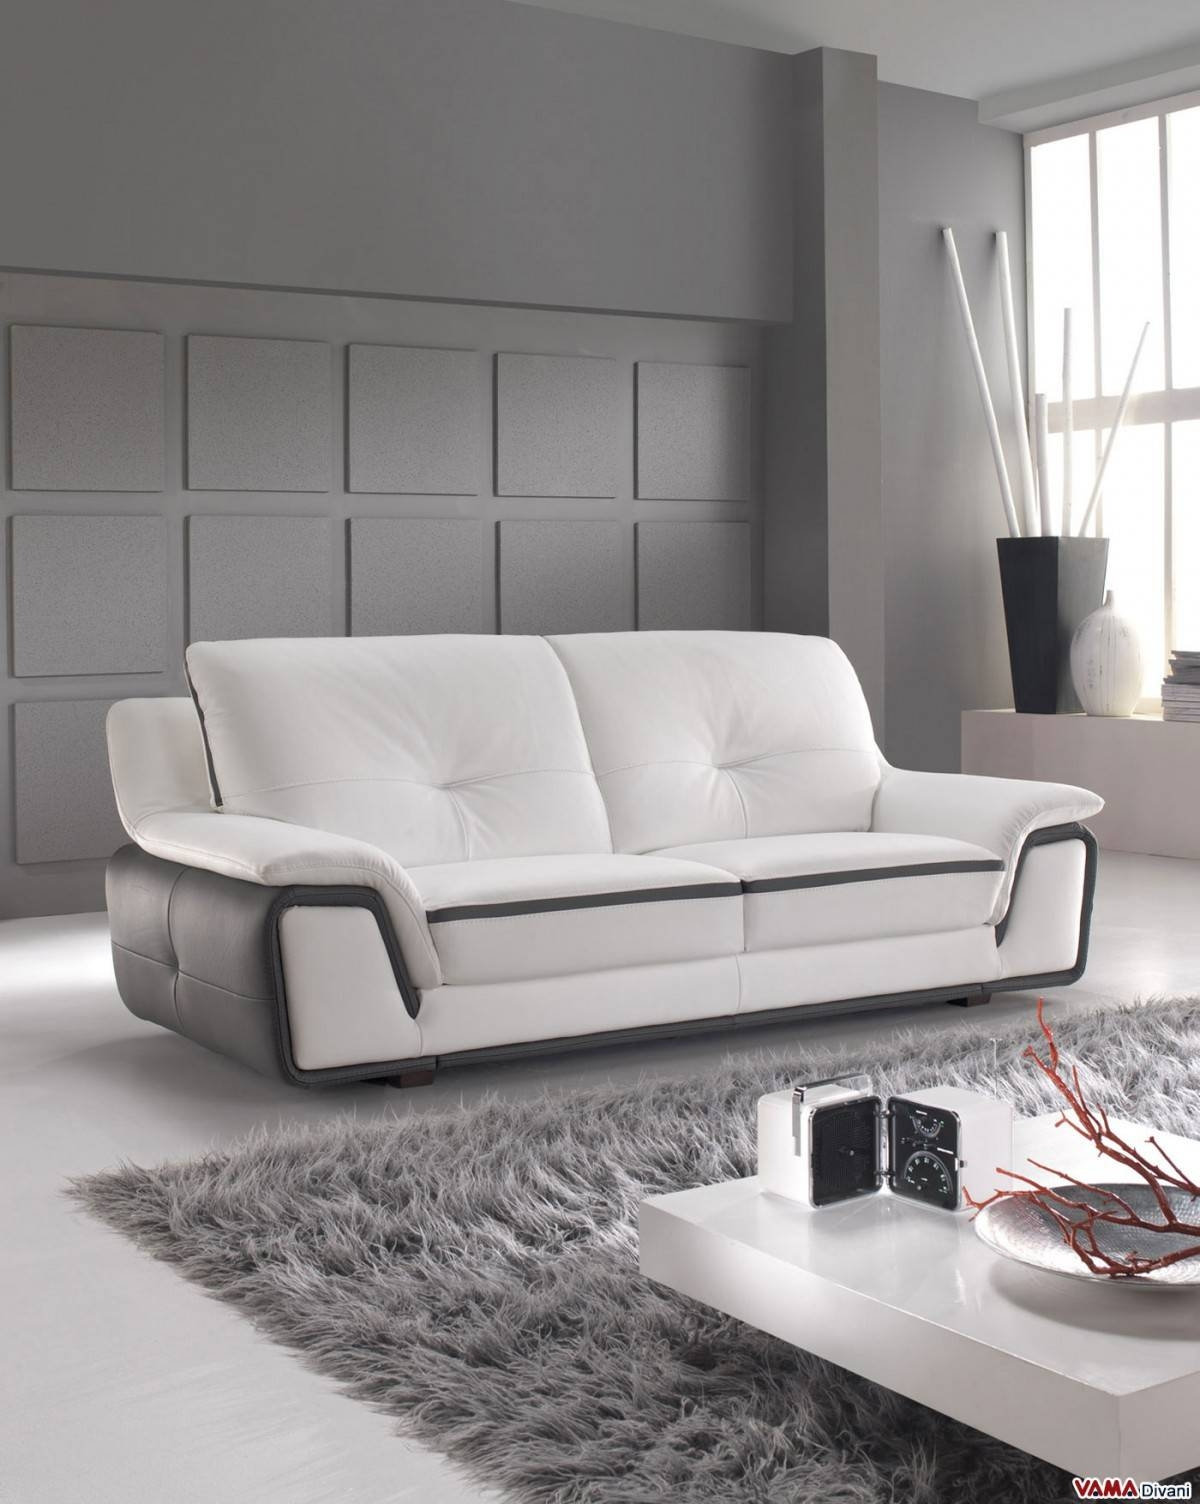 Contemporary Sofa In White And Grey Genuine Leather intended for Modern 3 Seater Sofas (Image 5 of 30)